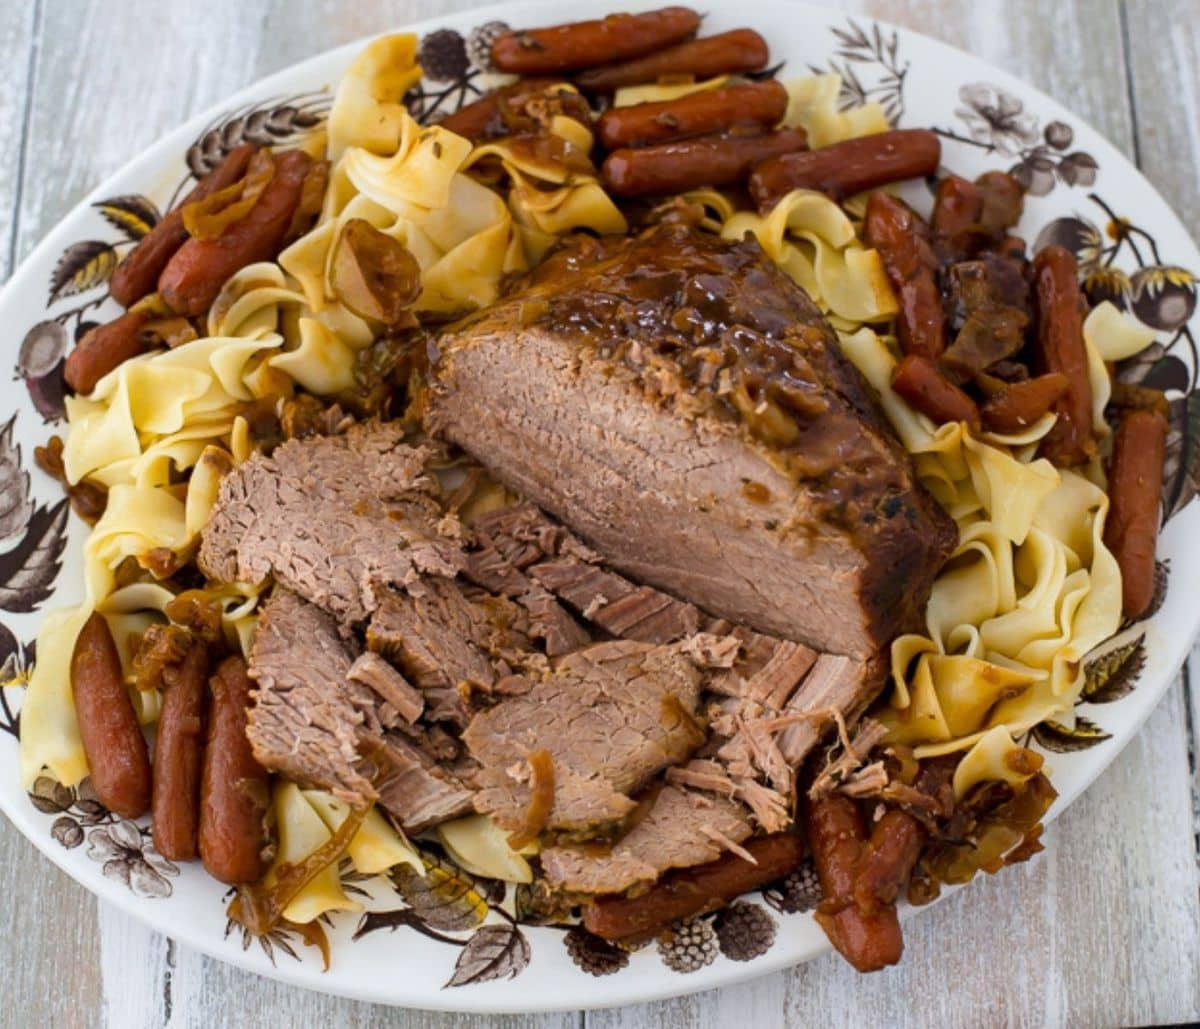 A sliced pot roast on a platter surrounded by noodles and carrots.